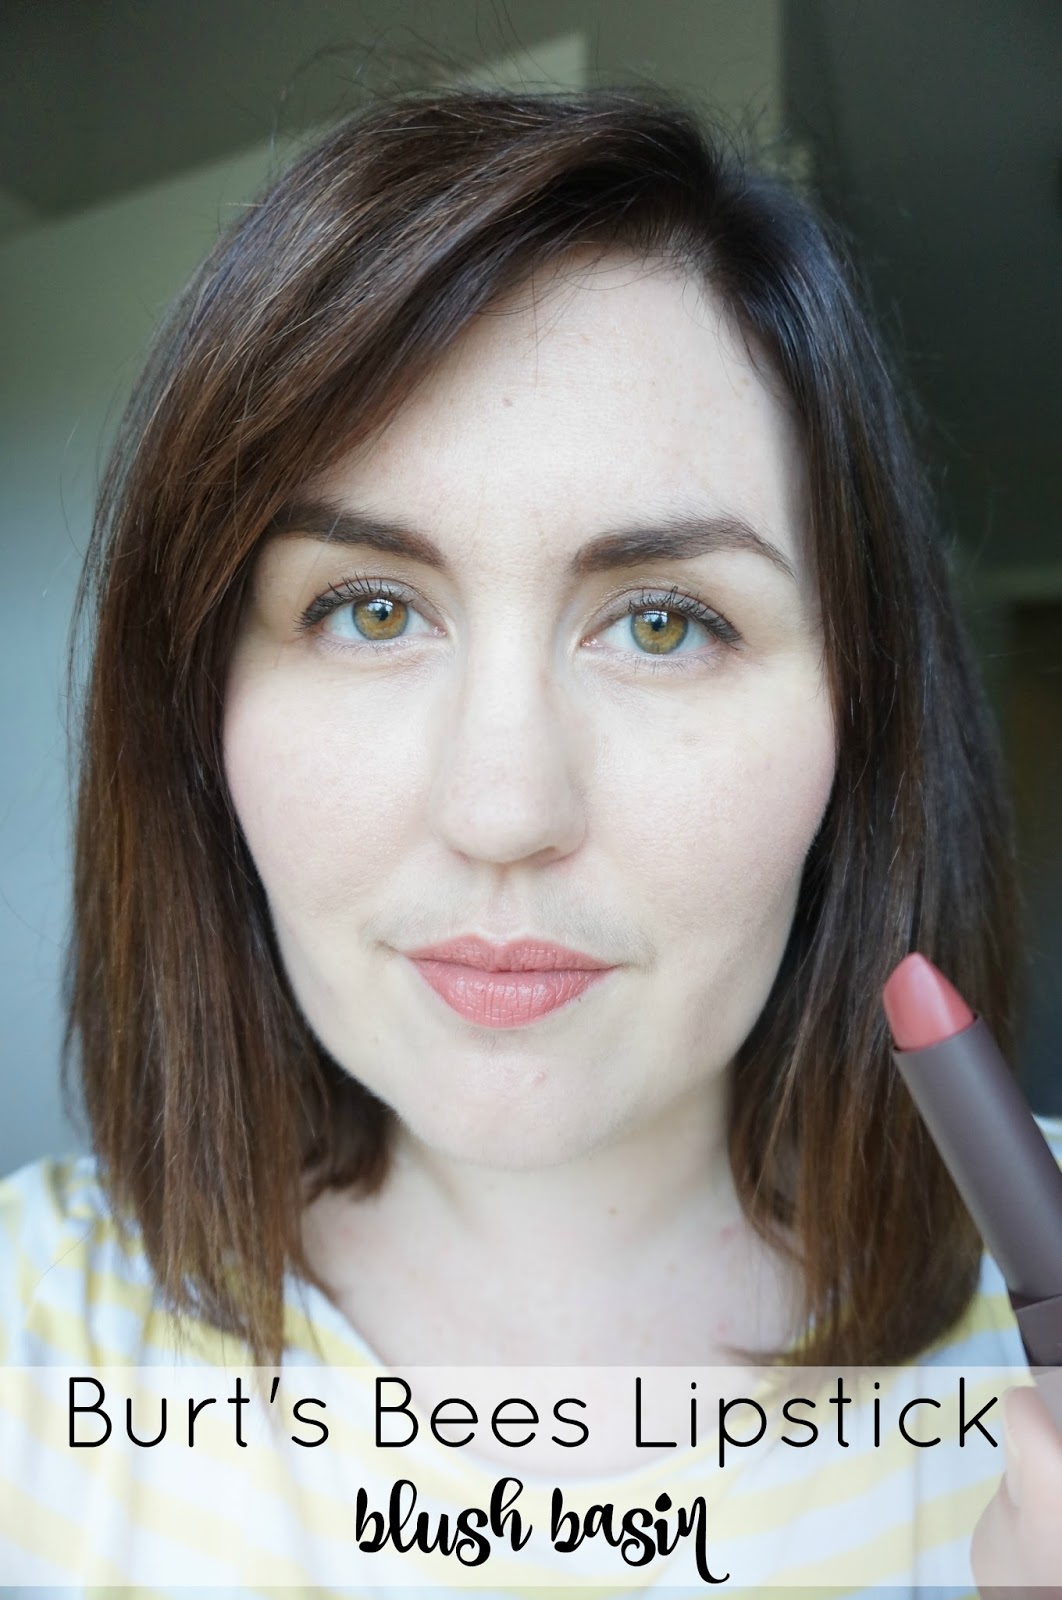 Makeup Monday: Burts Bees Lipstick by North Carolina style blogger Rebecca Lately